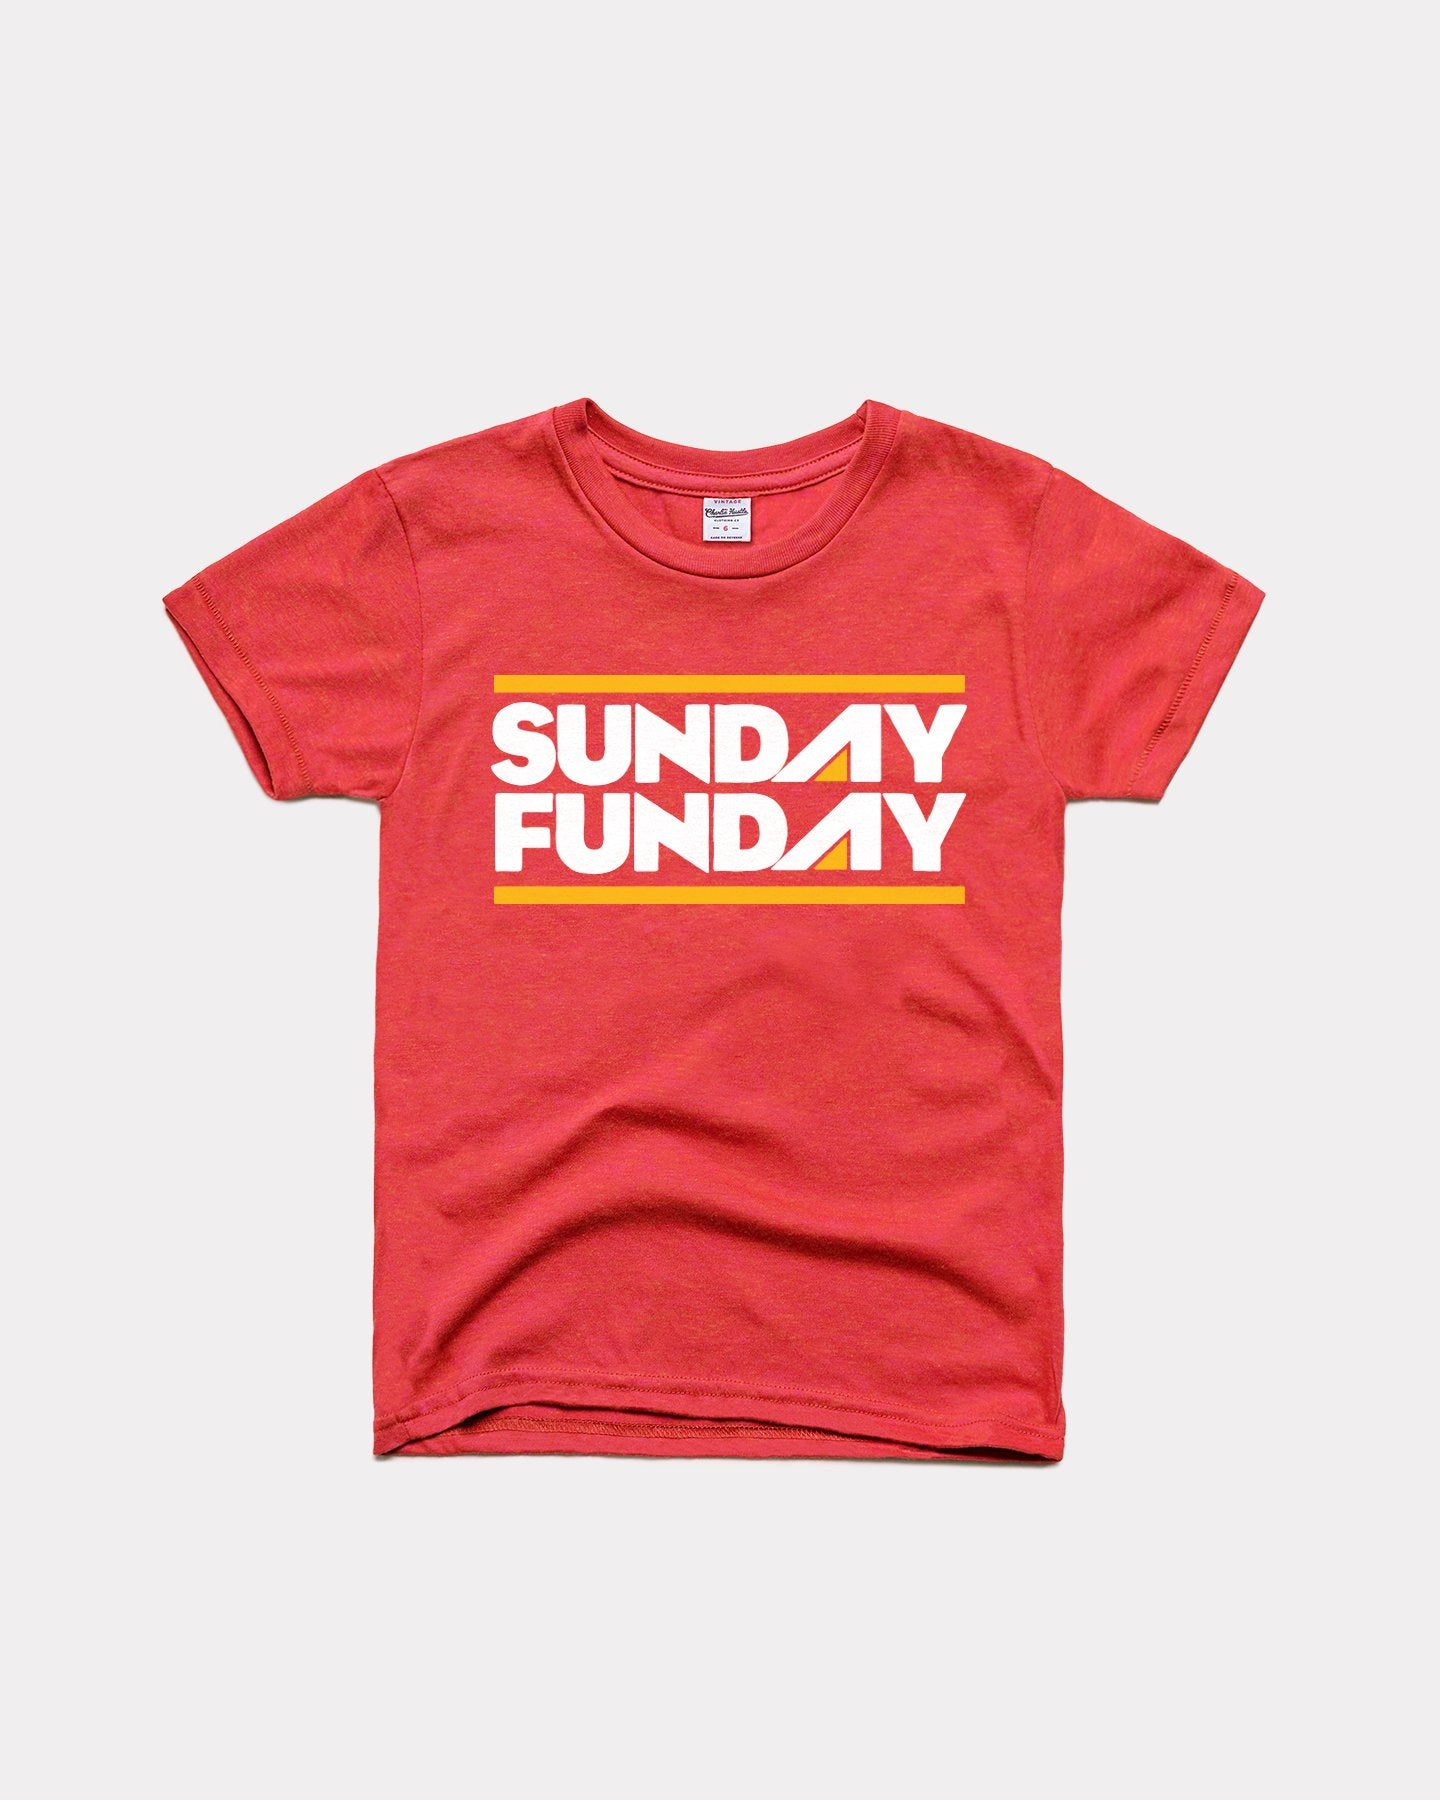 Youth Red Sunday Funday Vintage Arrowhead Youth T-Shirt